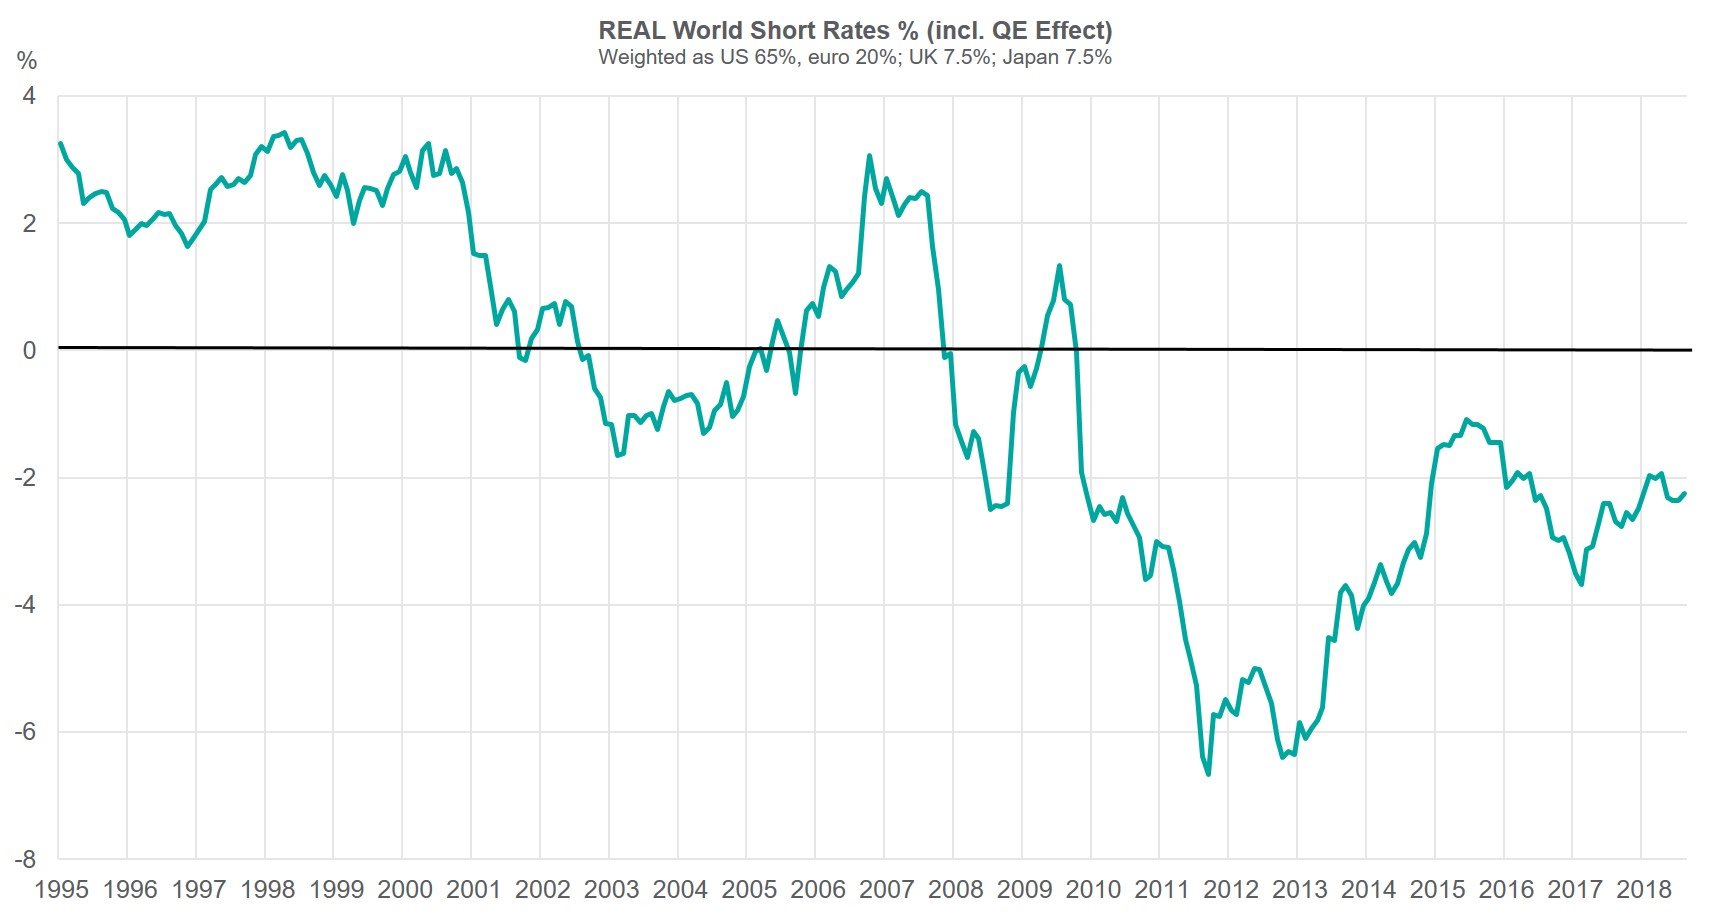 Real World Short Rates % Graph